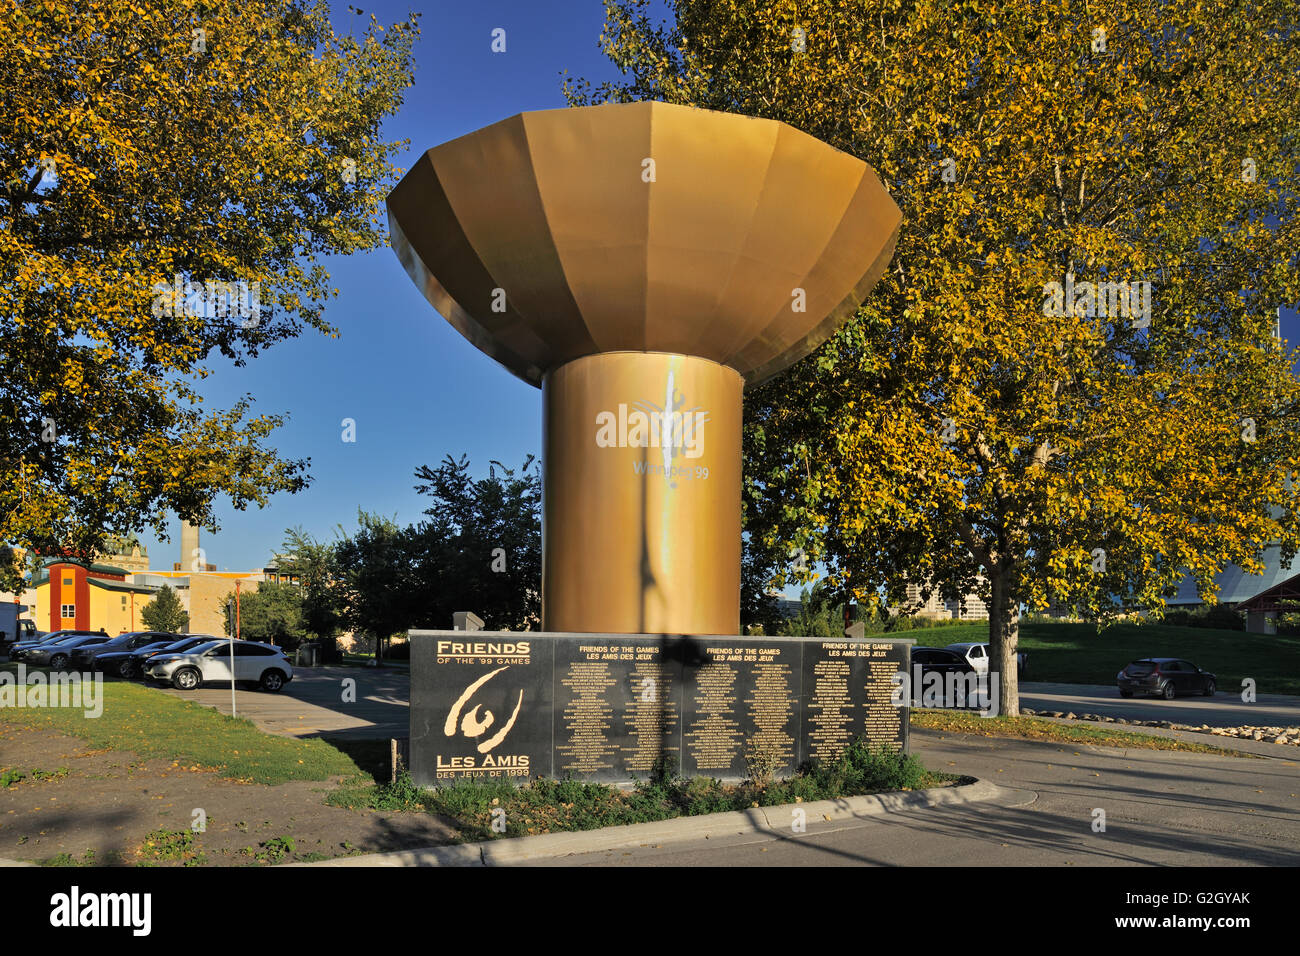 Sculpture commemorating the Panam Games, The Forks Winnipeg Manitoba Canada - Stock Image